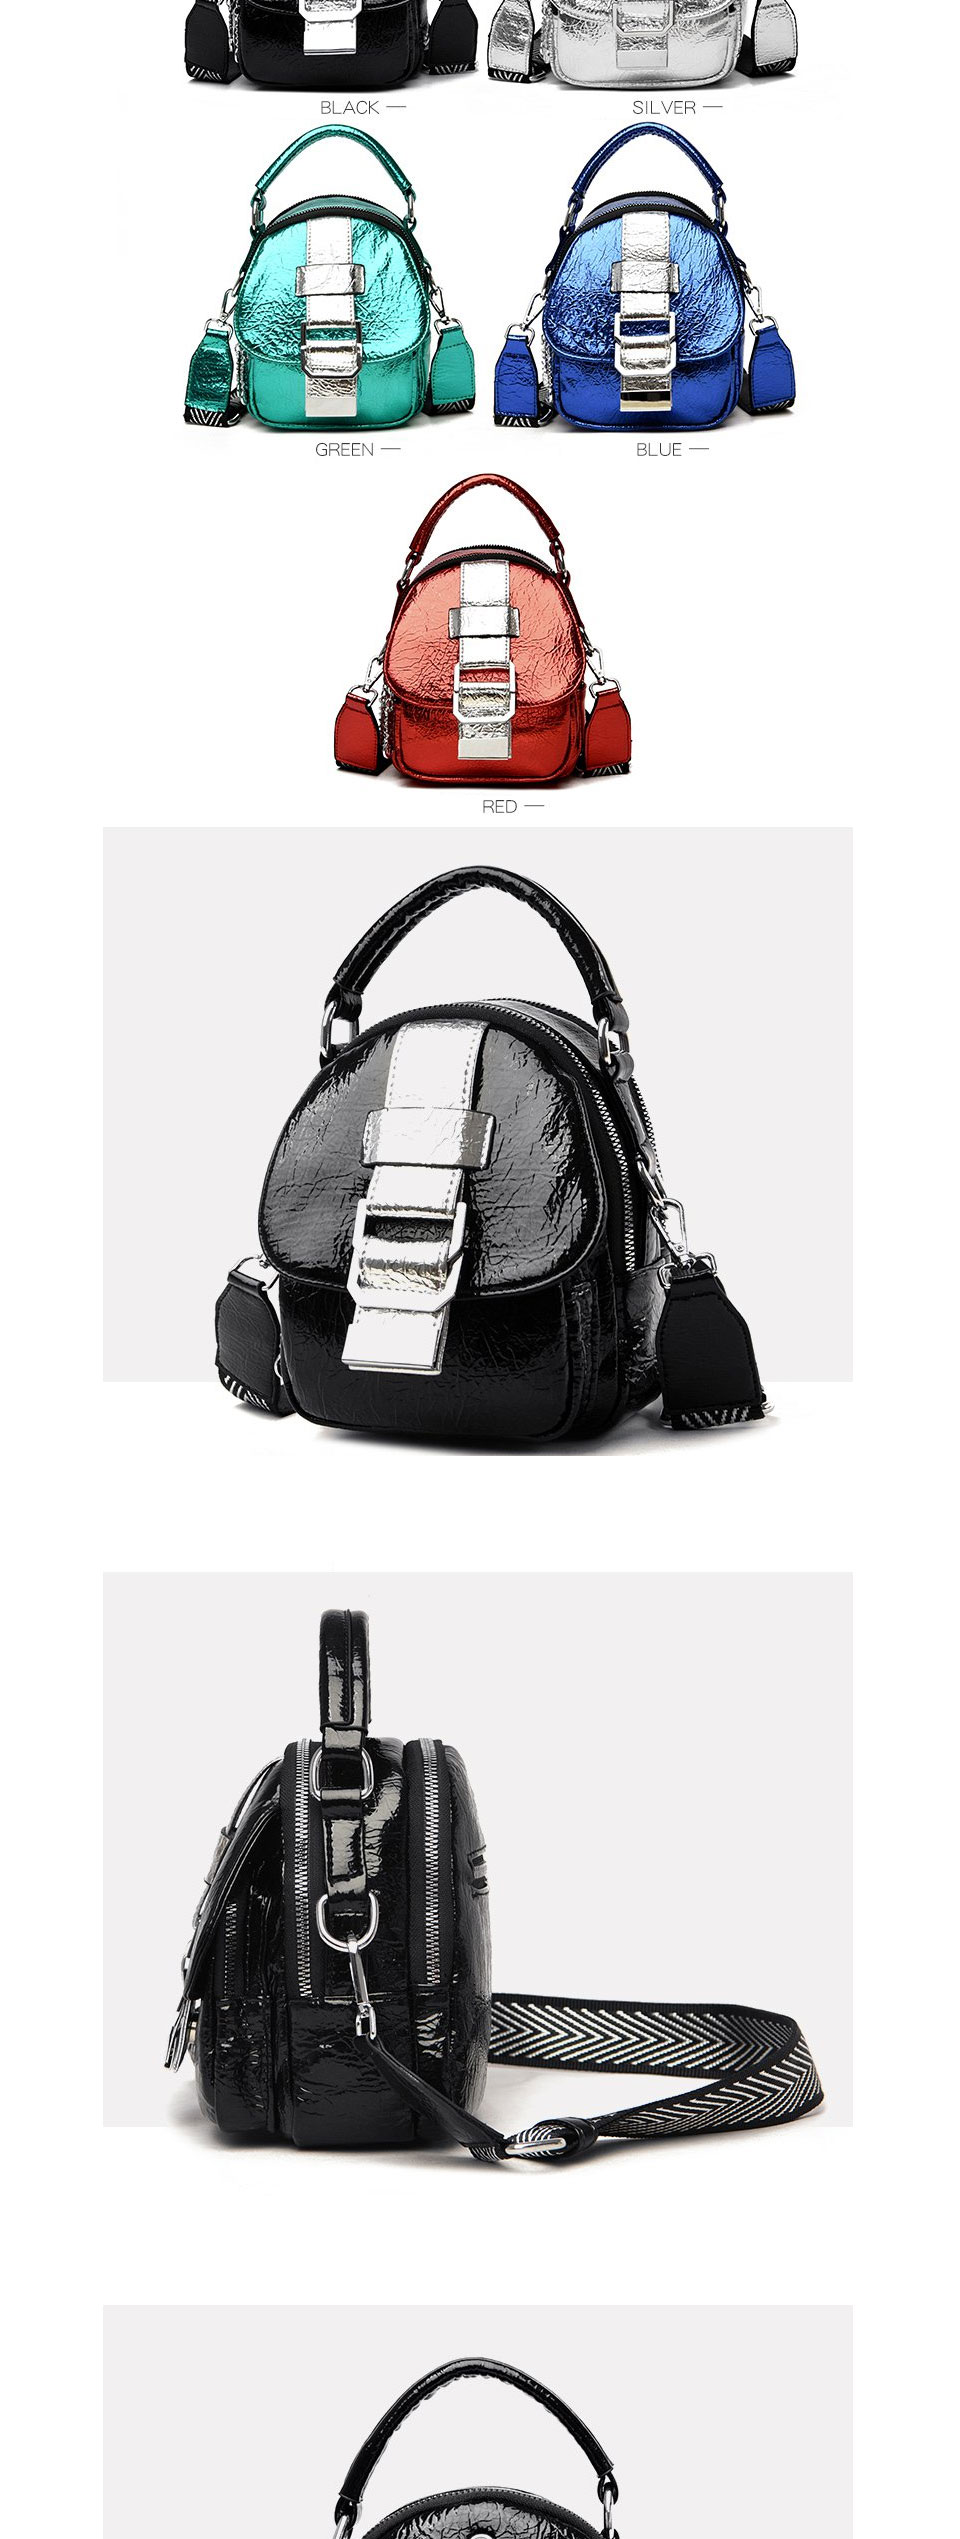 ACELURE Small Compact Backpack